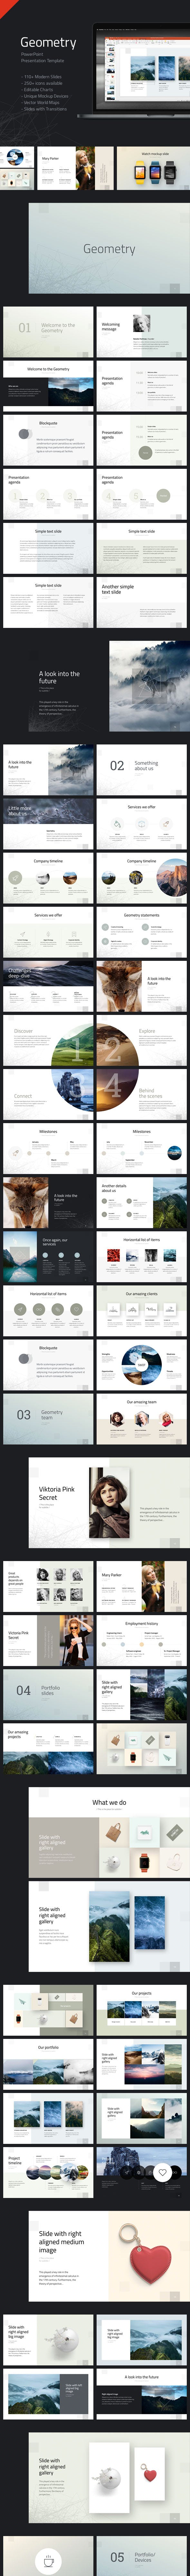 geometry powerpoint presentation template by reworkmedia graphicriver